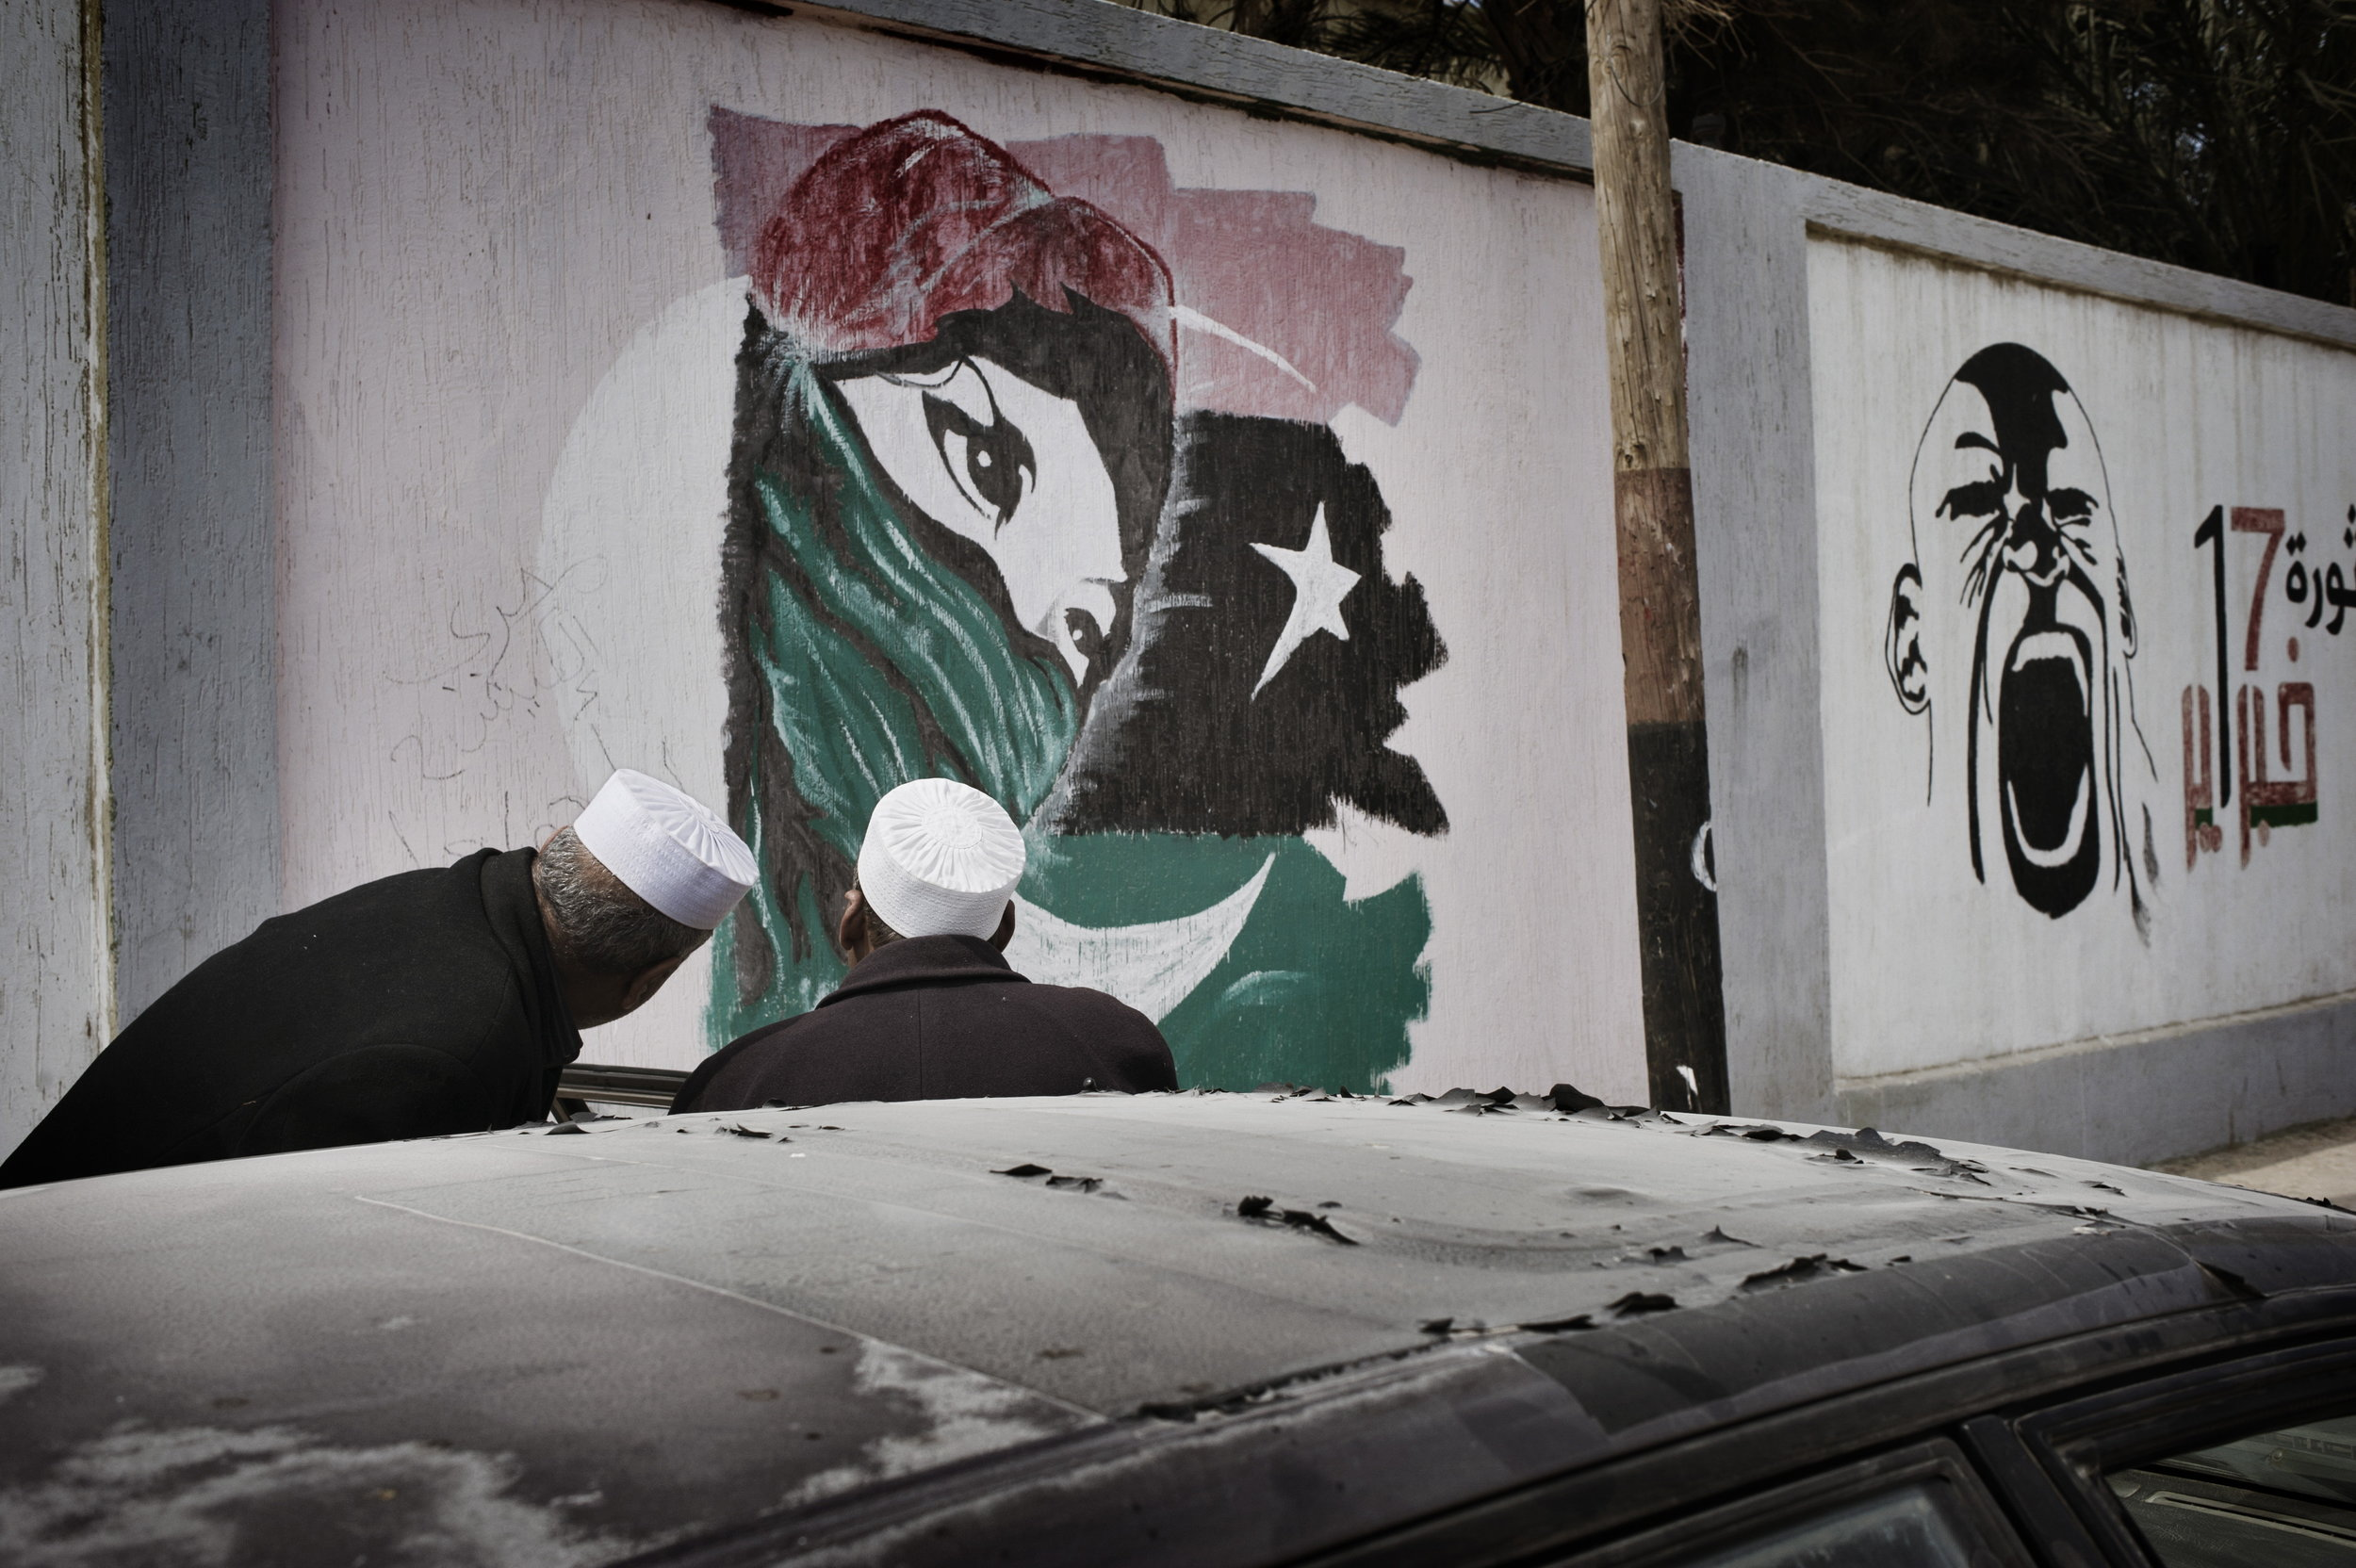 Benghazi Libya  March 28  2012:  New  graffiti  on  the school's wall.